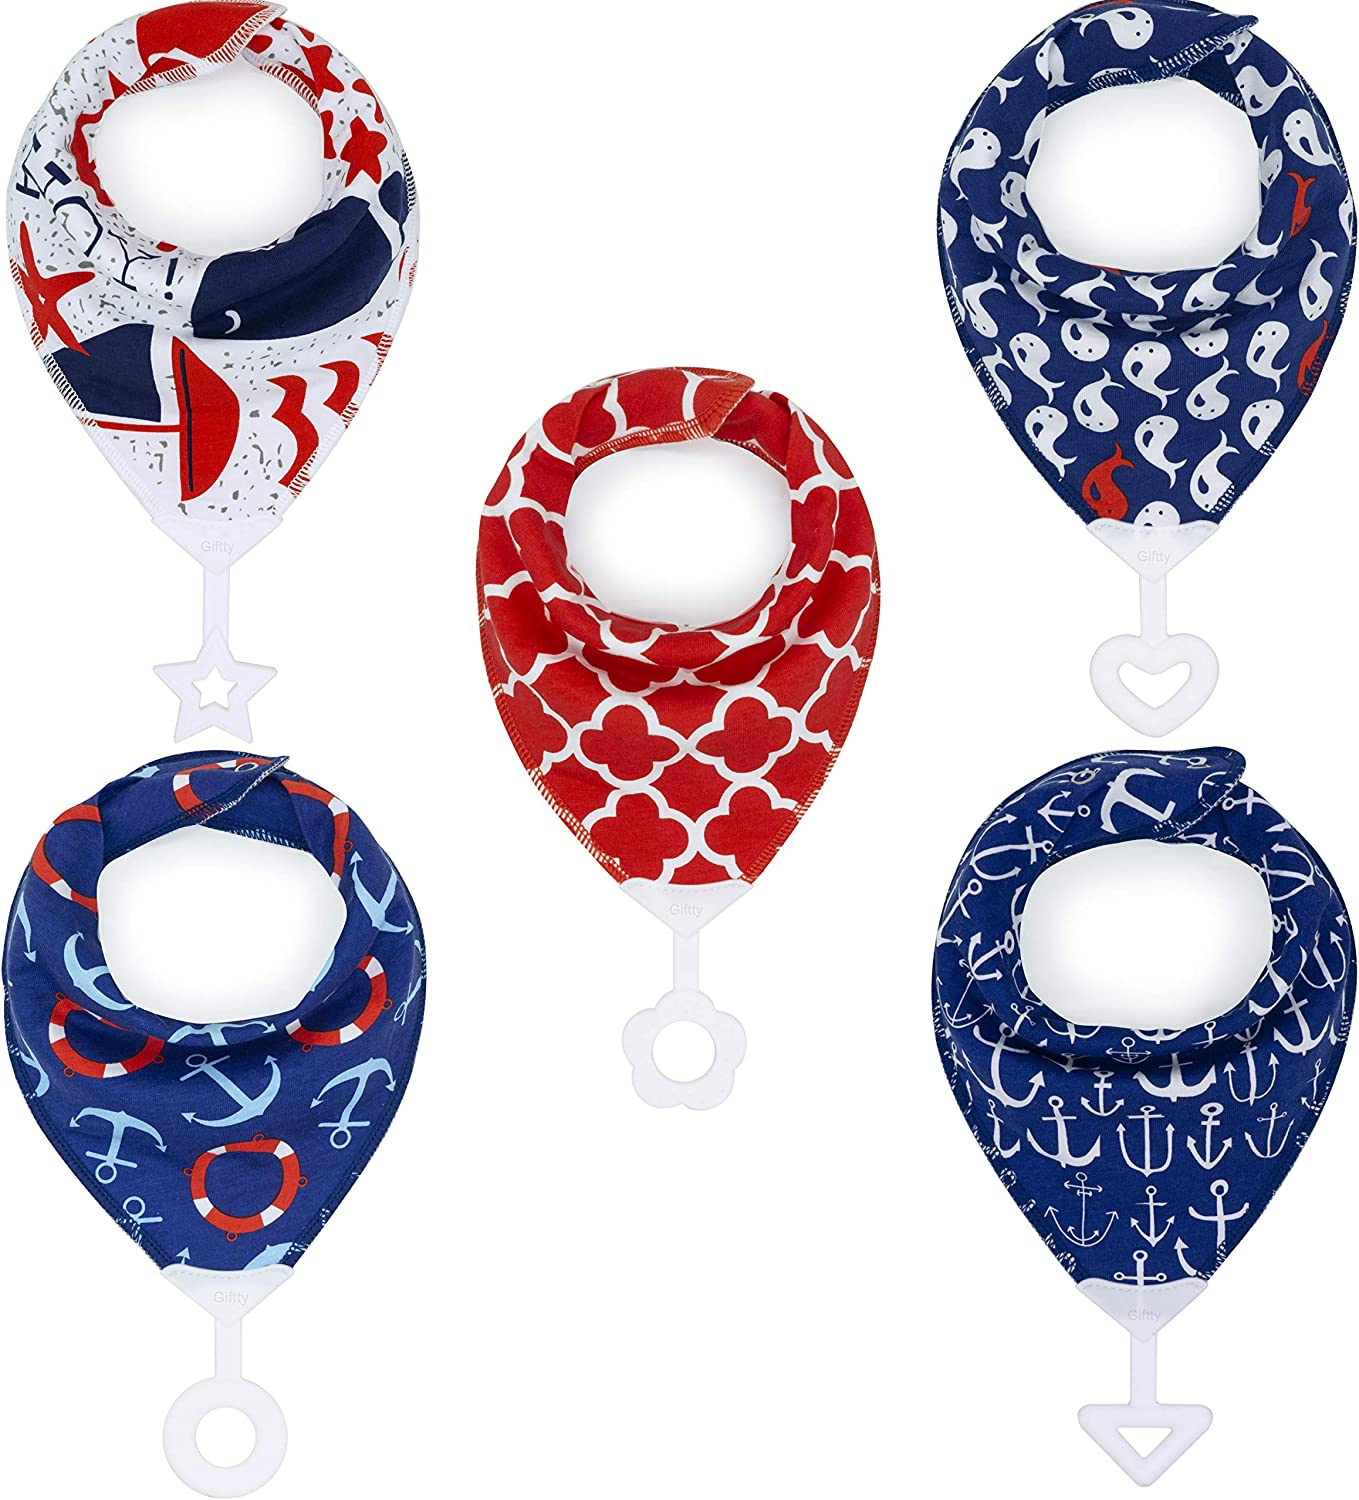 Adjustable Snap for Baby Toddler Boys /& Girls Gold Africa, 5-Pack Teething Bib Bandana Bibs Set with Teether Absorbent Organic Drool Bibs with BPA-Free Silicone Teether Teething Toy